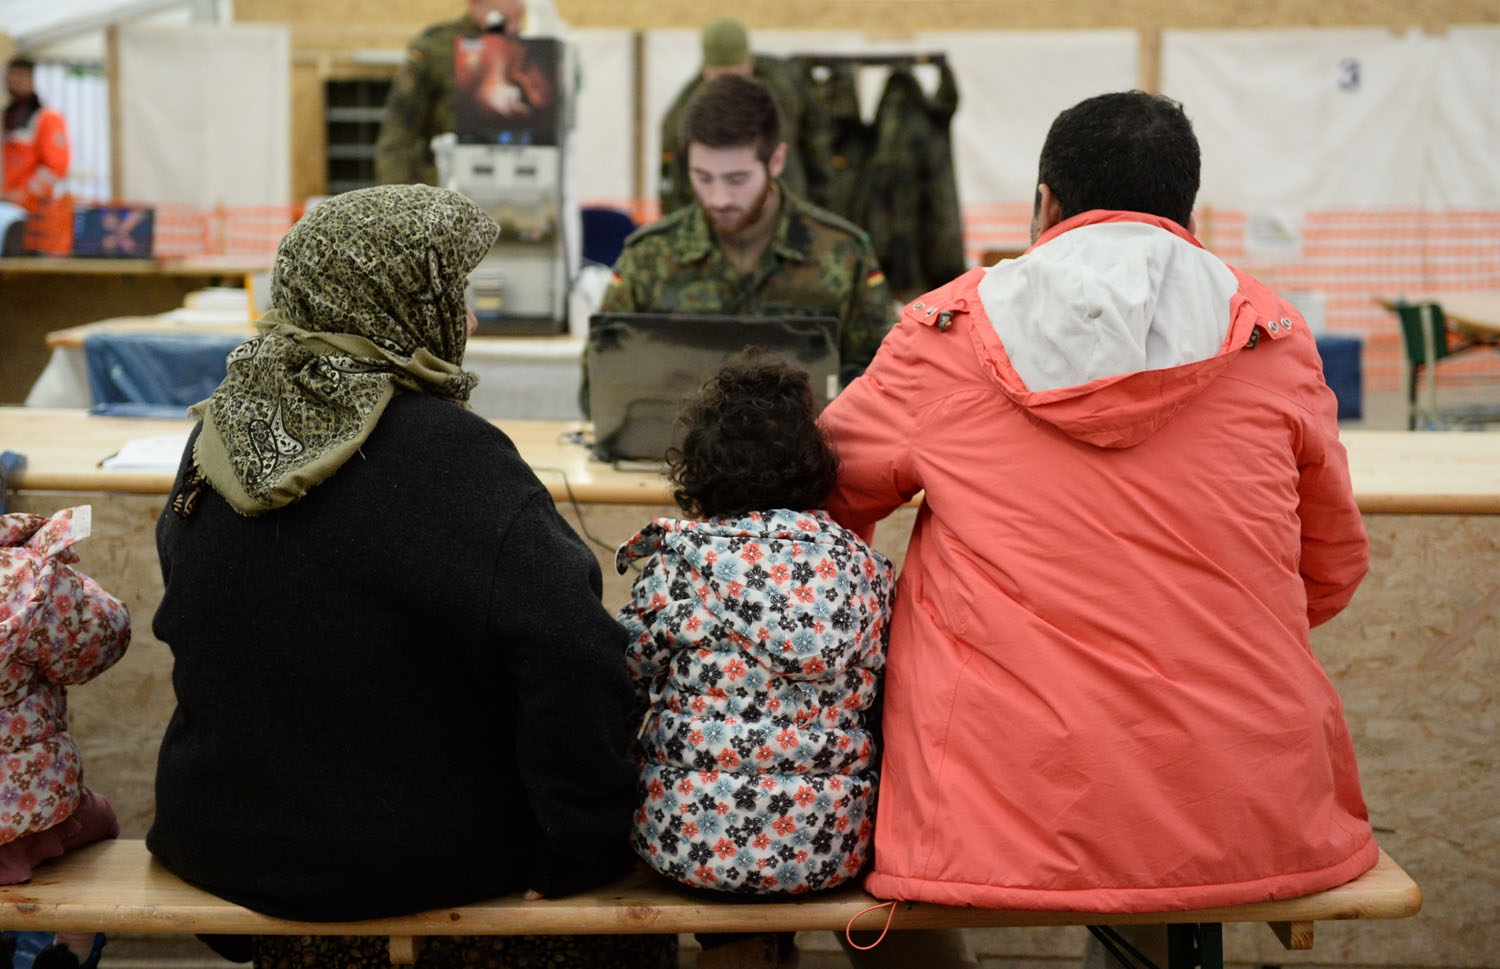 Refugees from Syria wait to register at the German army's air base in Erding, southern Germany, on January 31, 2016